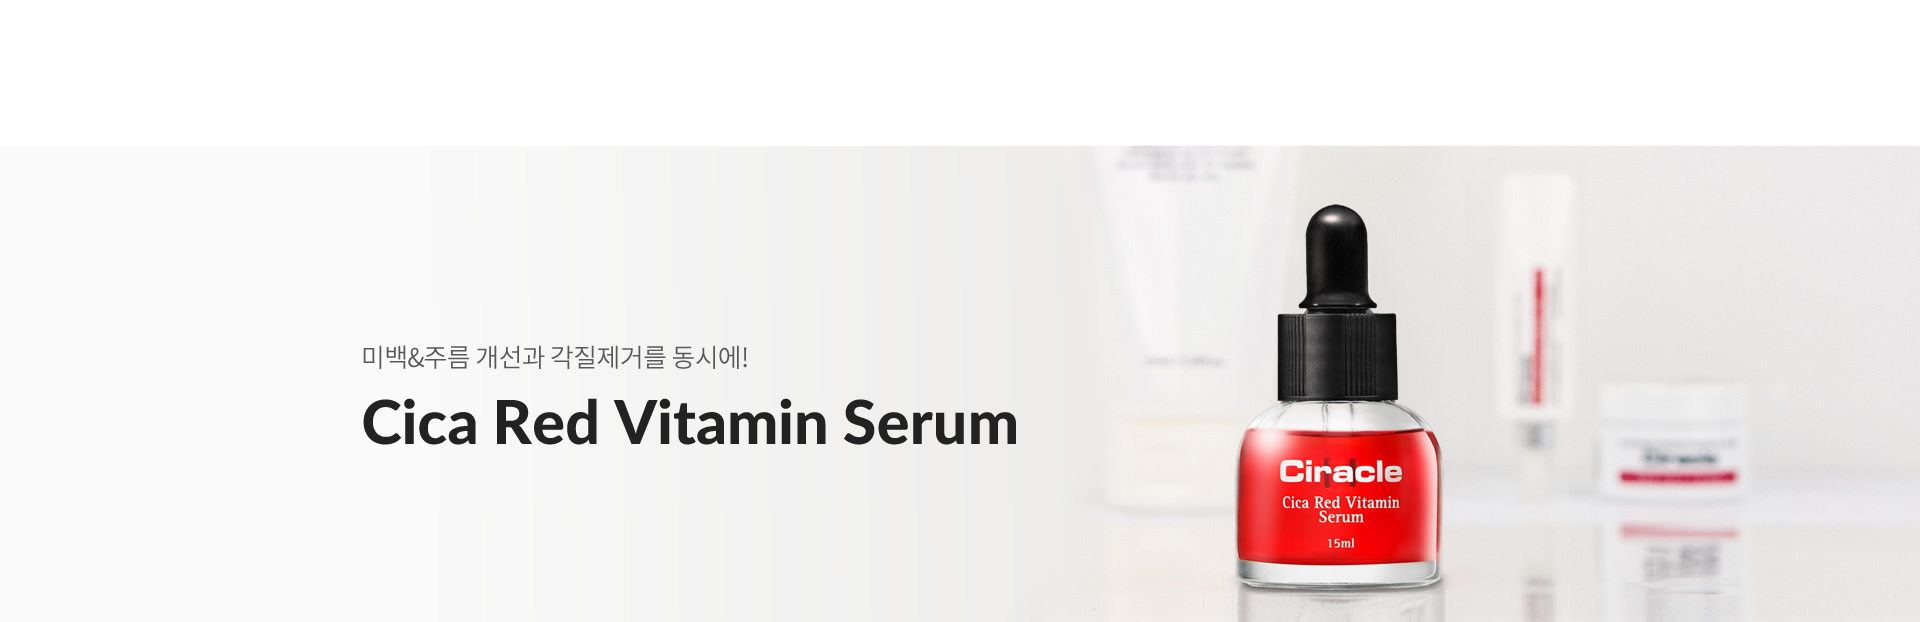 serum-da-chuc-nang-ciracle-cica-red-vitamin-serum